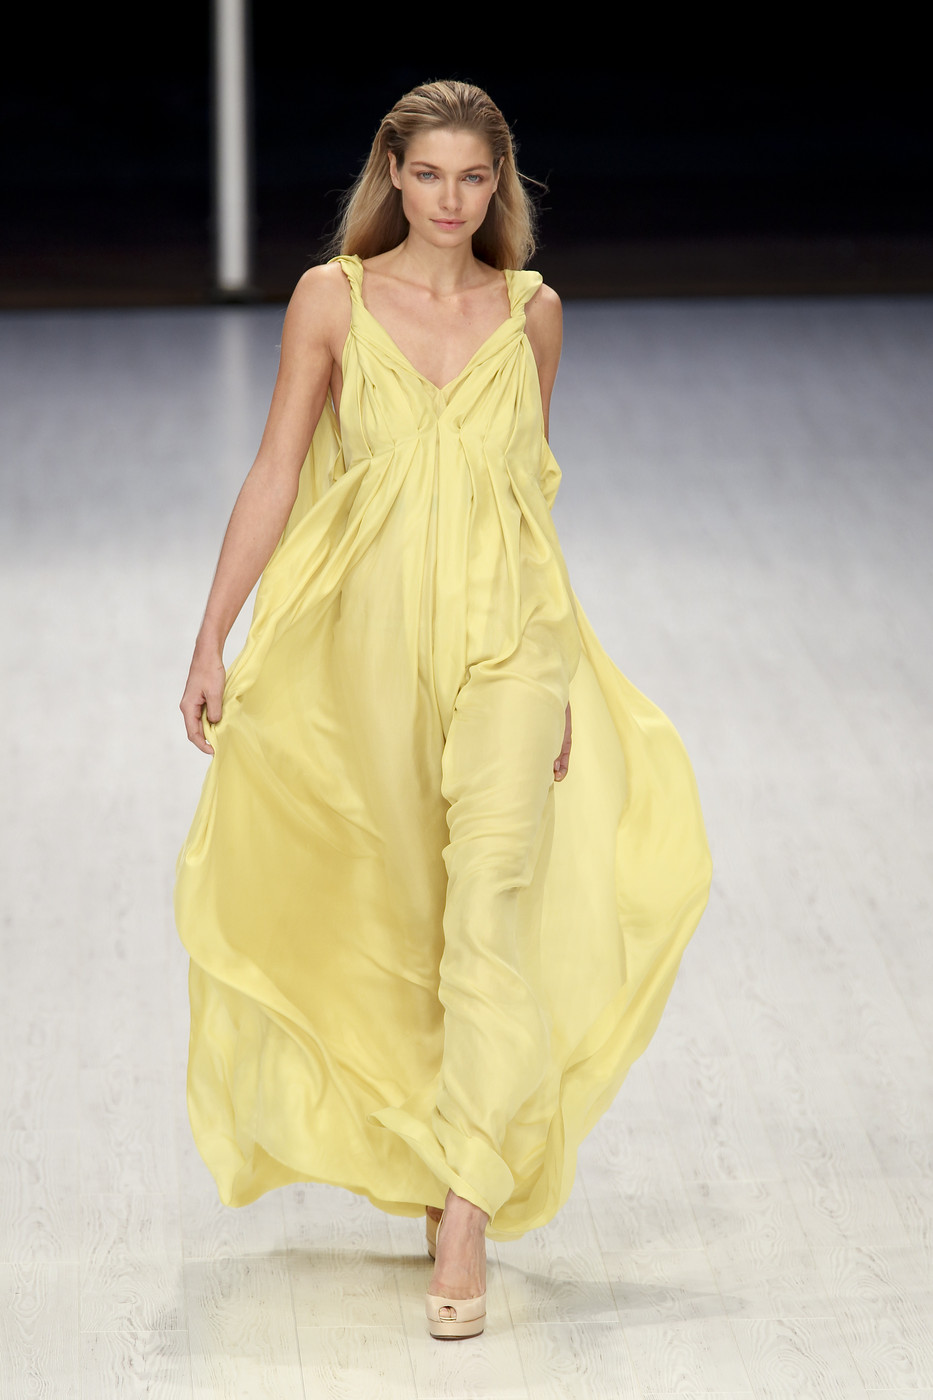 via fashioned by love | Matthew Williamson Spring/Summer 2011